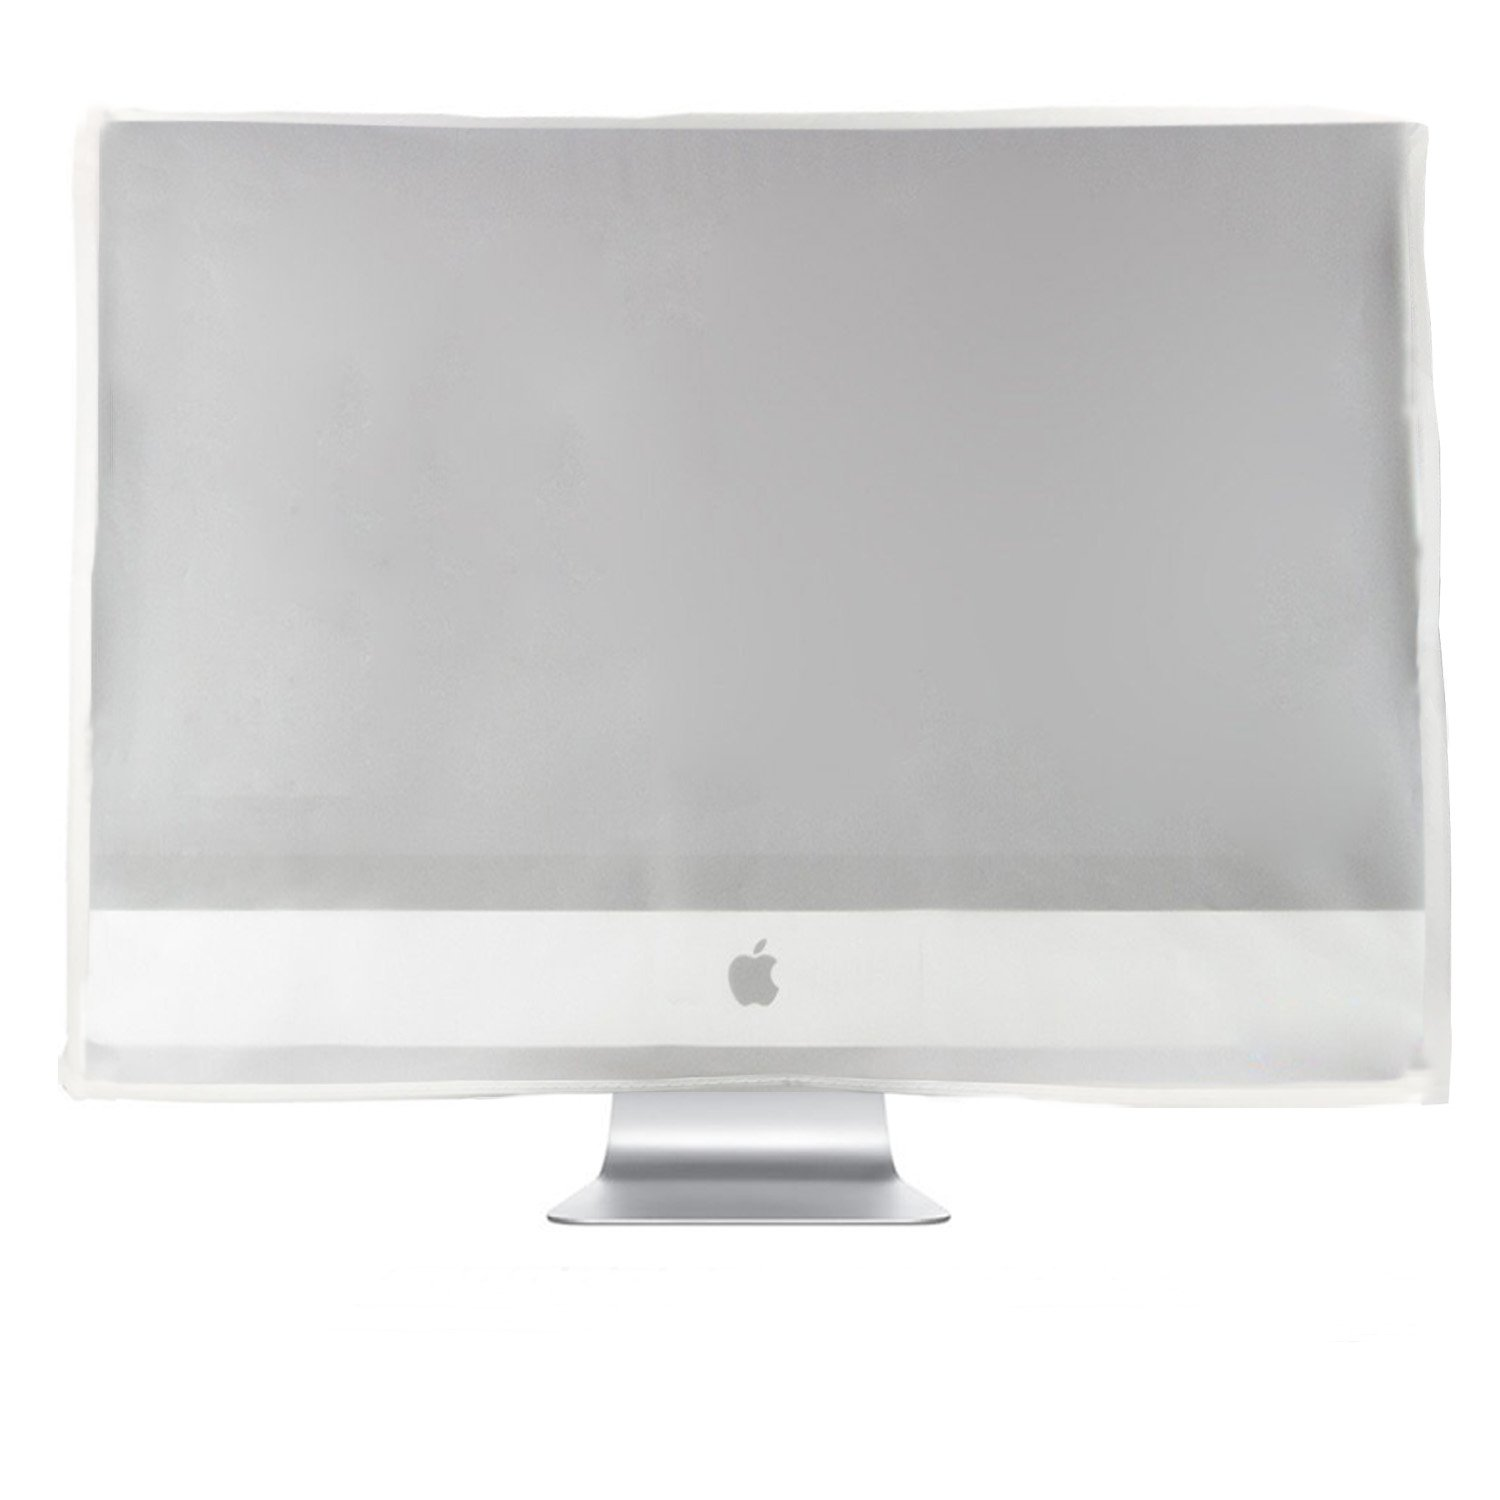 Computer Dust Cover, Protective Dust Screen Cover Sleeve for 27 iMac 27W x18H x3(Top)/8(Bottom) SZBRO